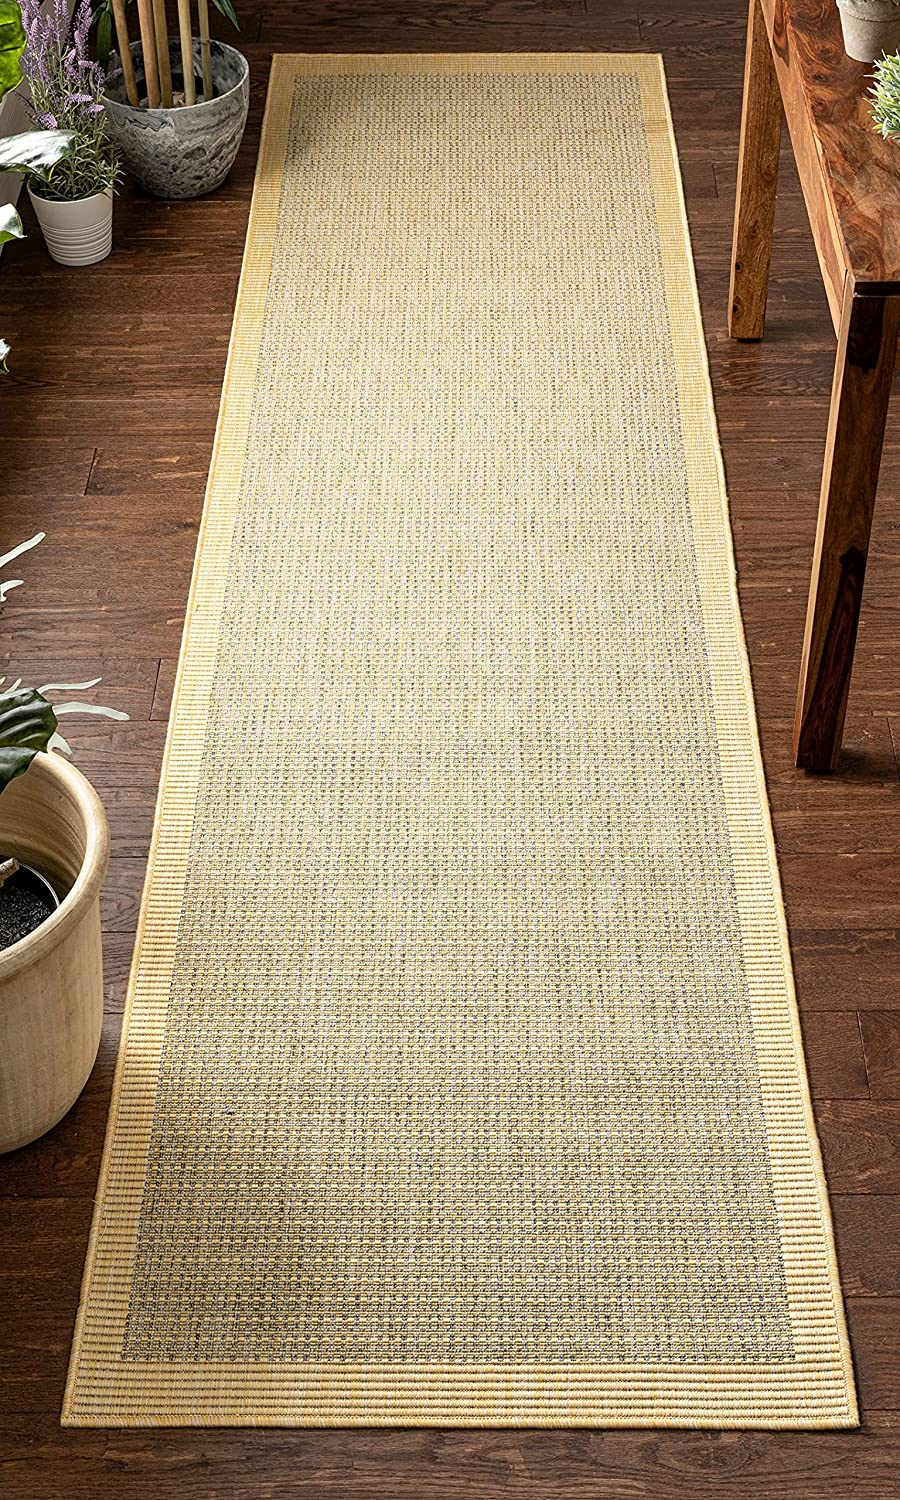 Well Woven Woden Bright Shipping included Yellow Flat-Weave Ranking TOP17 Indoor Outdoor Pile So